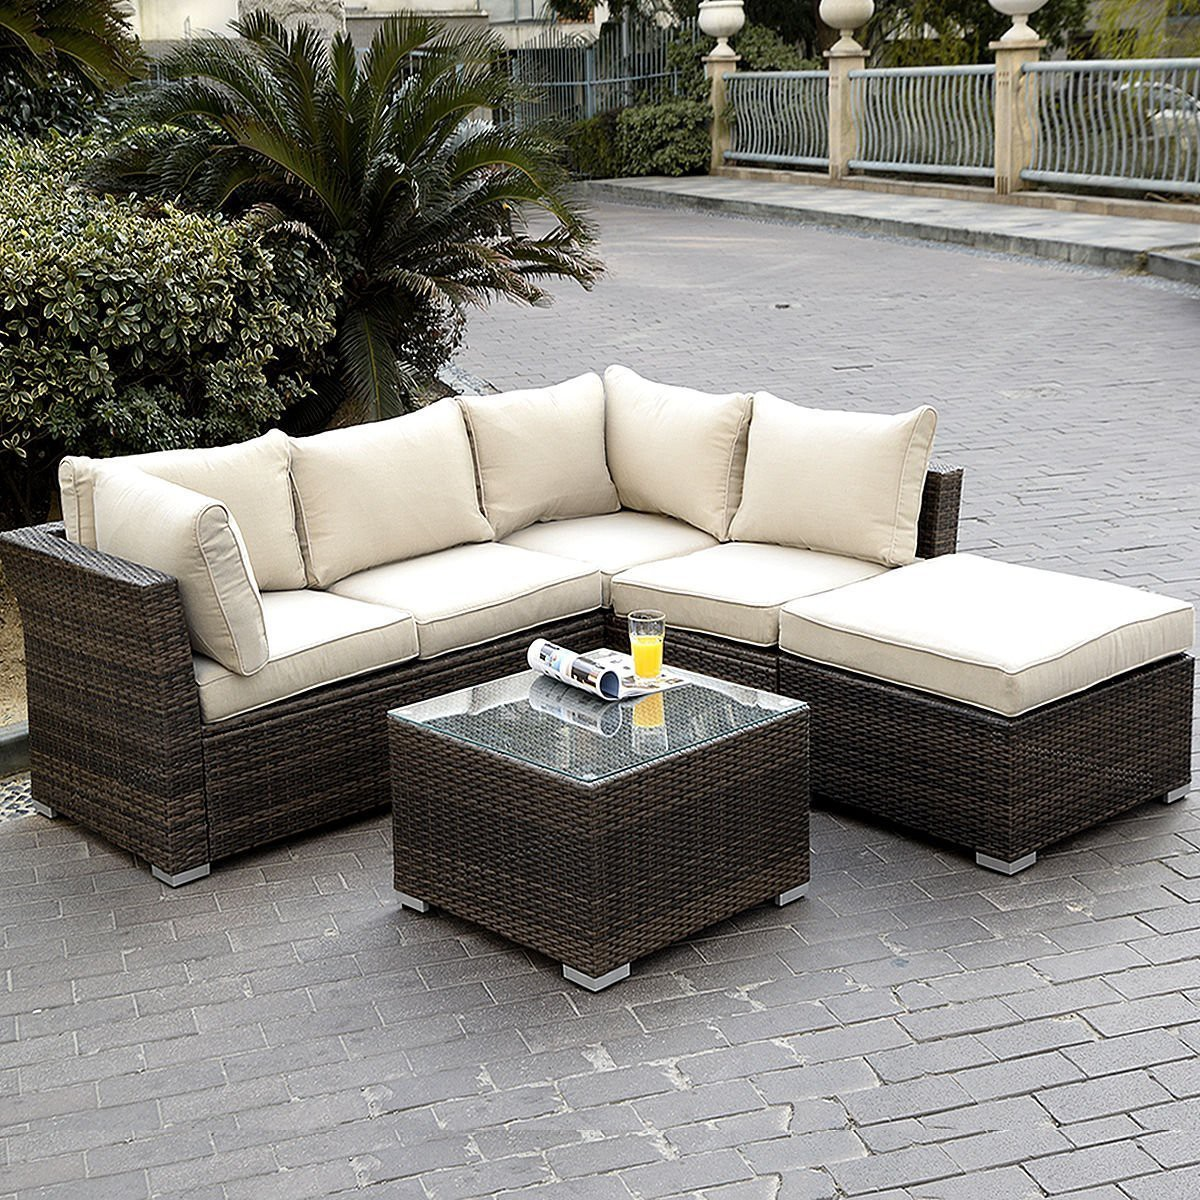 giantex 4pc wicker rattan outdoor sectional sofa set. Black Bedroom Furniture Sets. Home Design Ideas